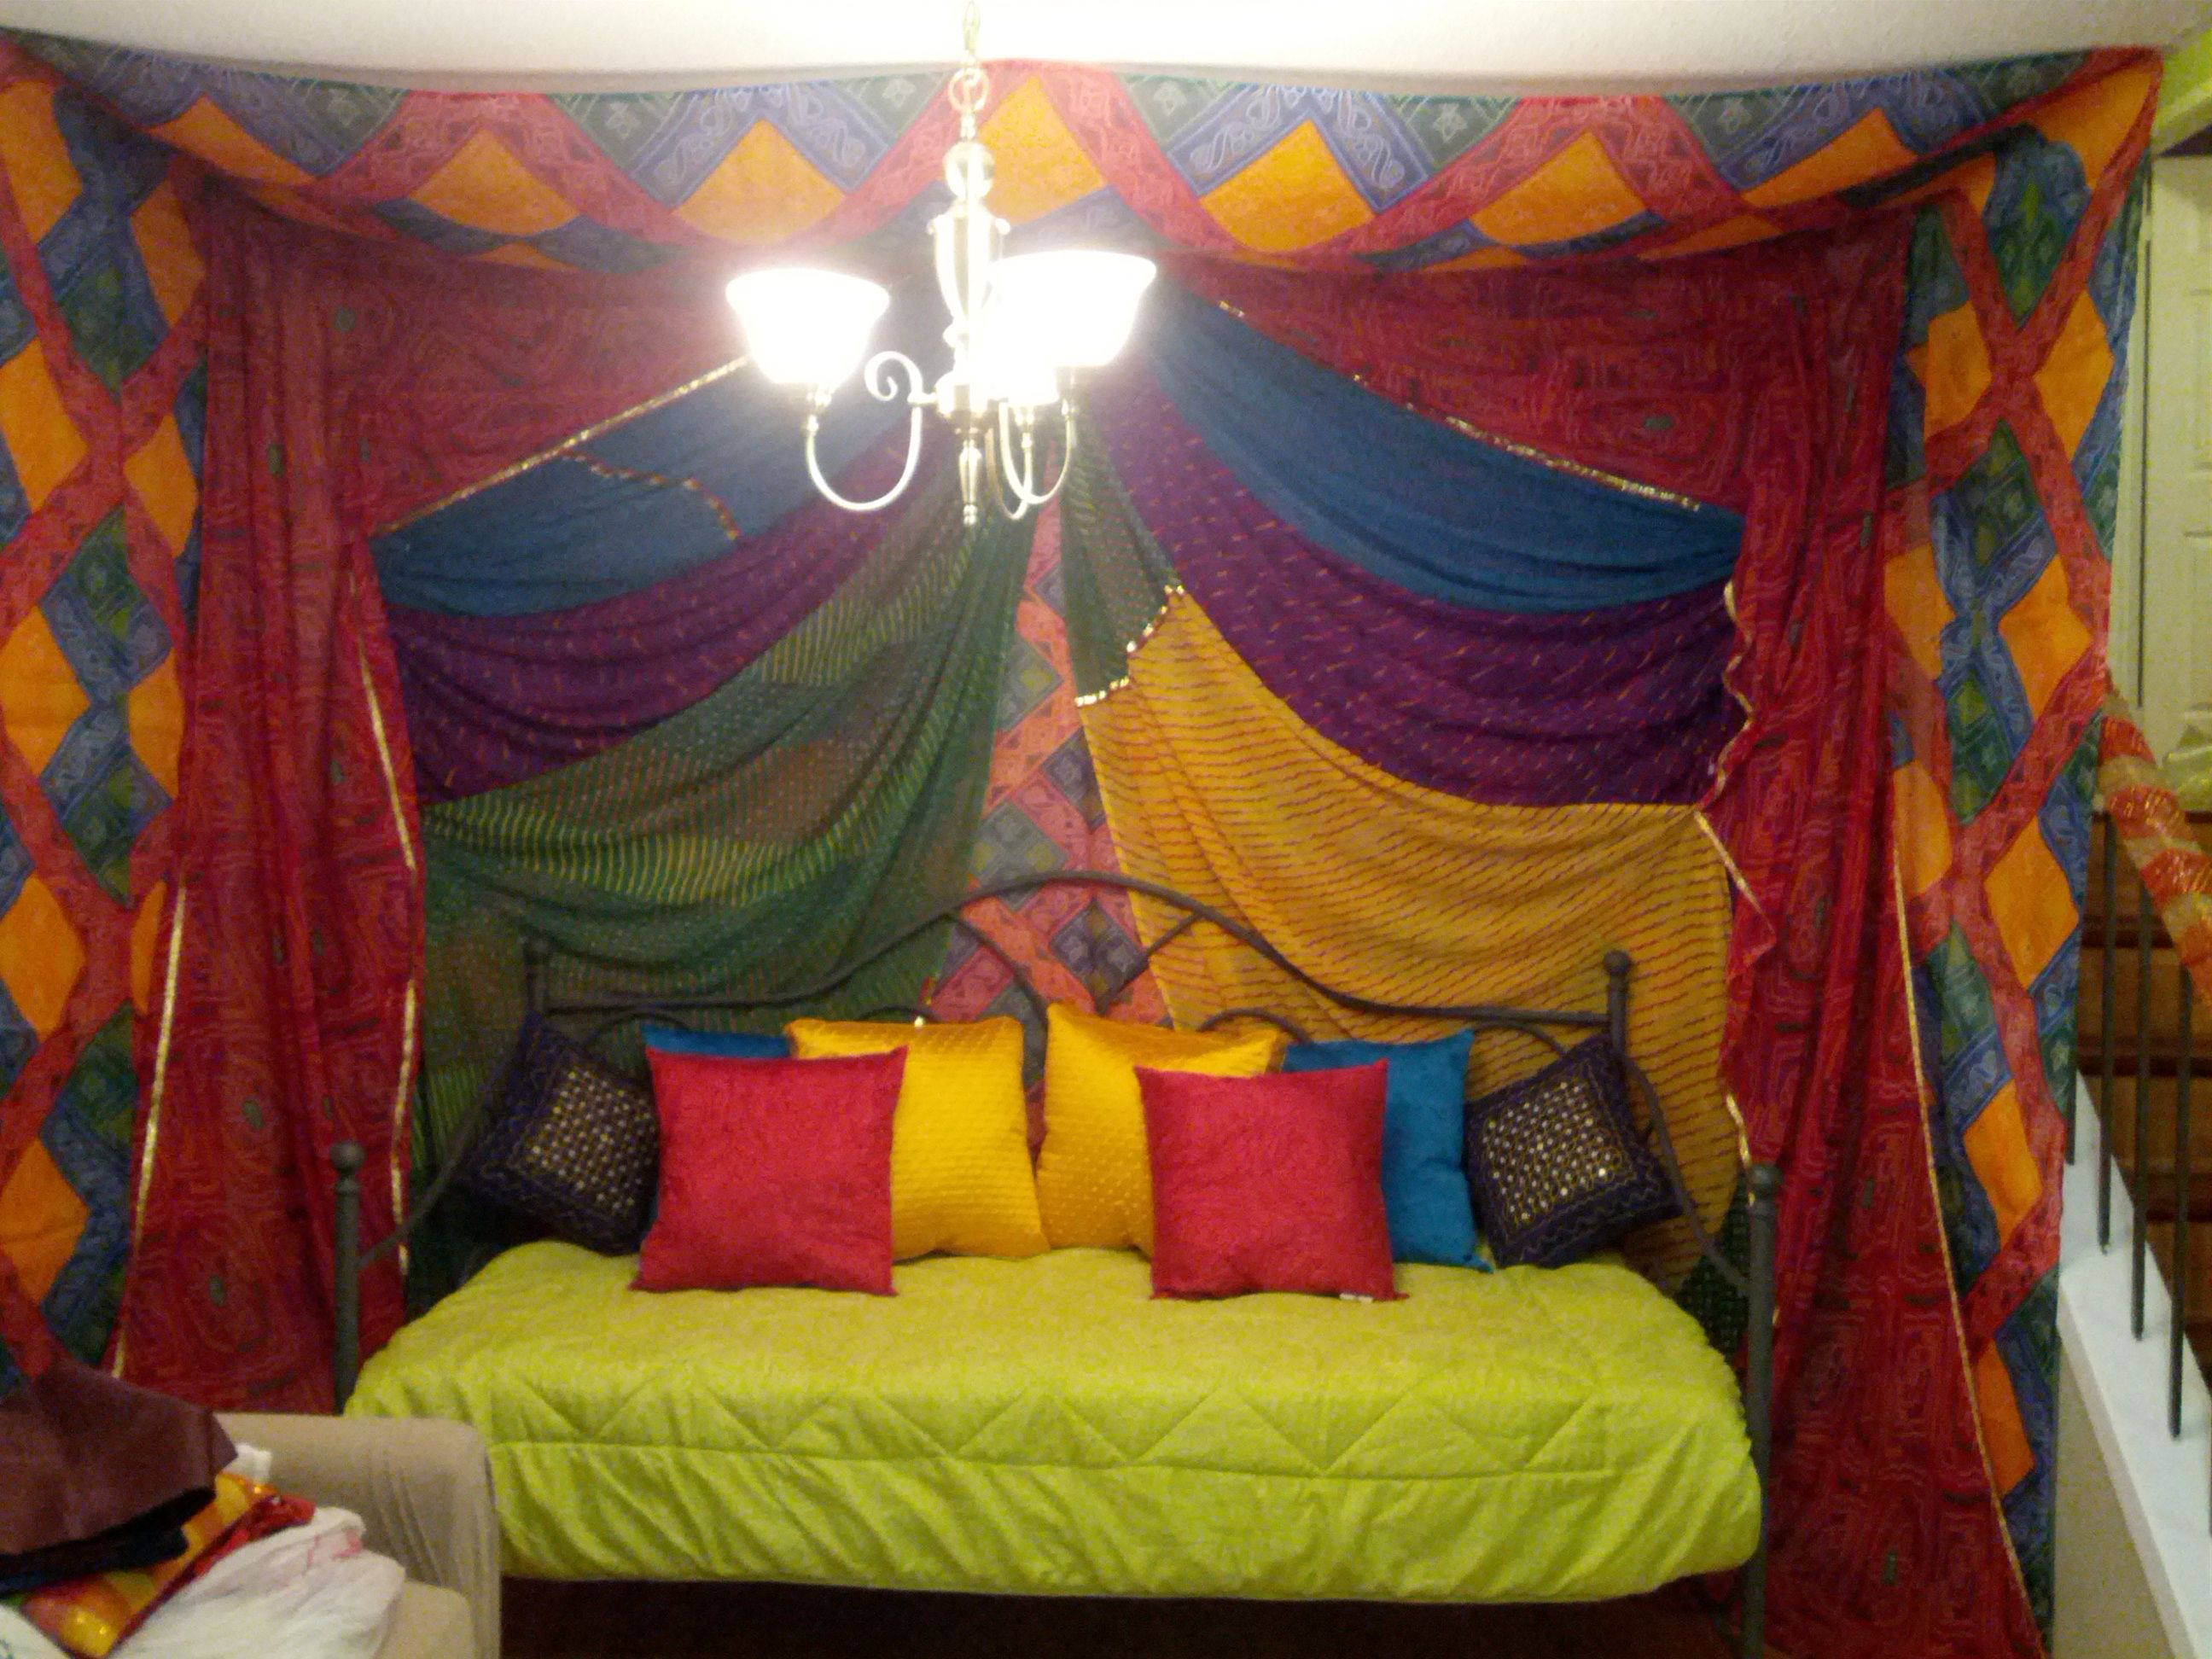 Indian wedding decor at home for a rajasthani inspired for Decorations for weddings at home